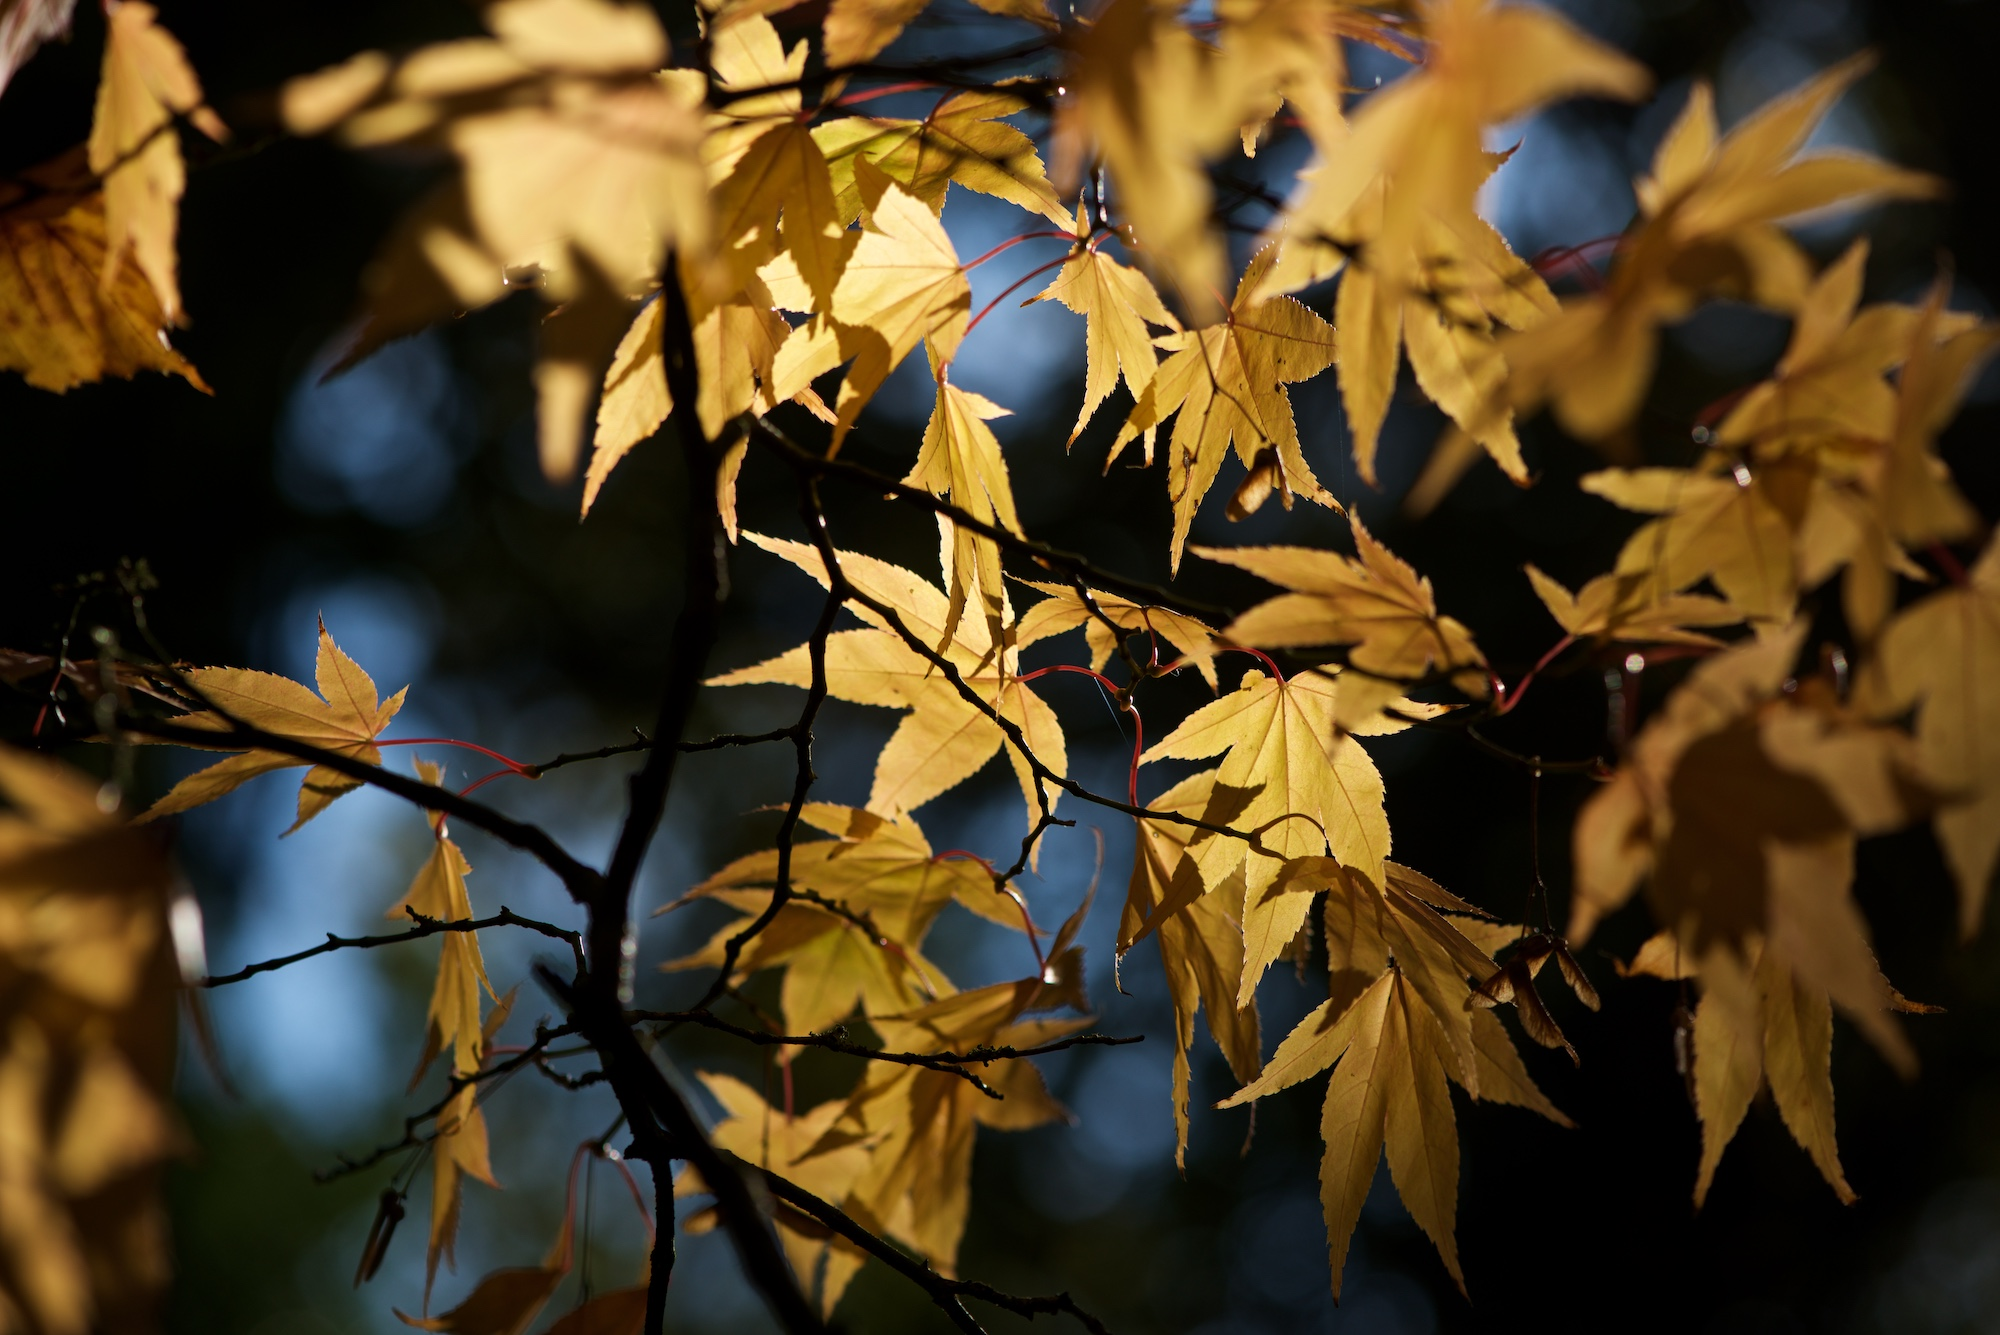 Many yellow-orange maple leaves are lit up in sunlight against a dark background.